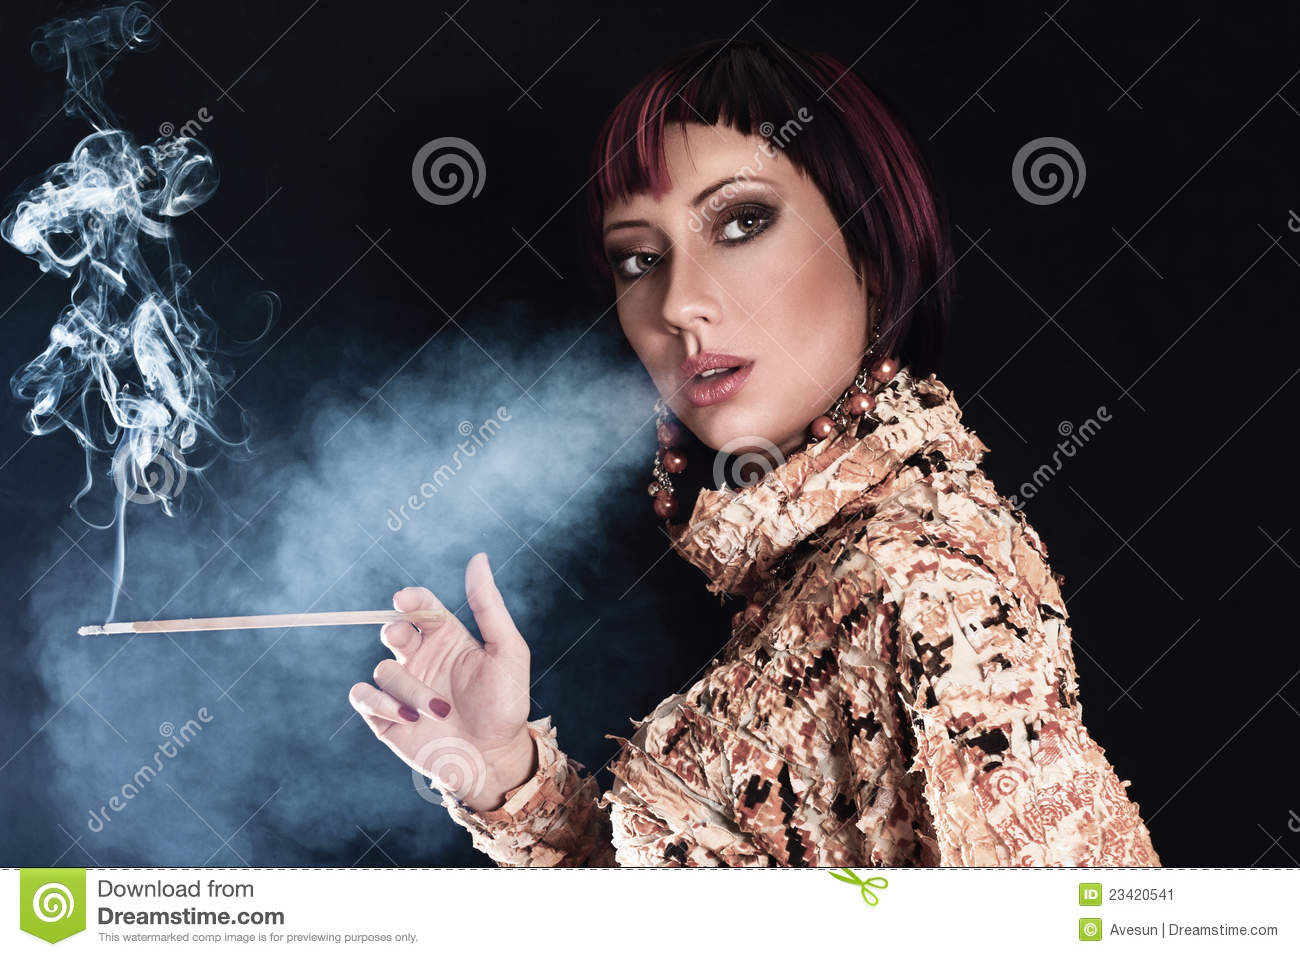 dating a girl who smokes cigarettes Lesbians and bisexual women are 2-3 times more likely to smoke cigarettes regularly than straight people, which might be one of the 46.